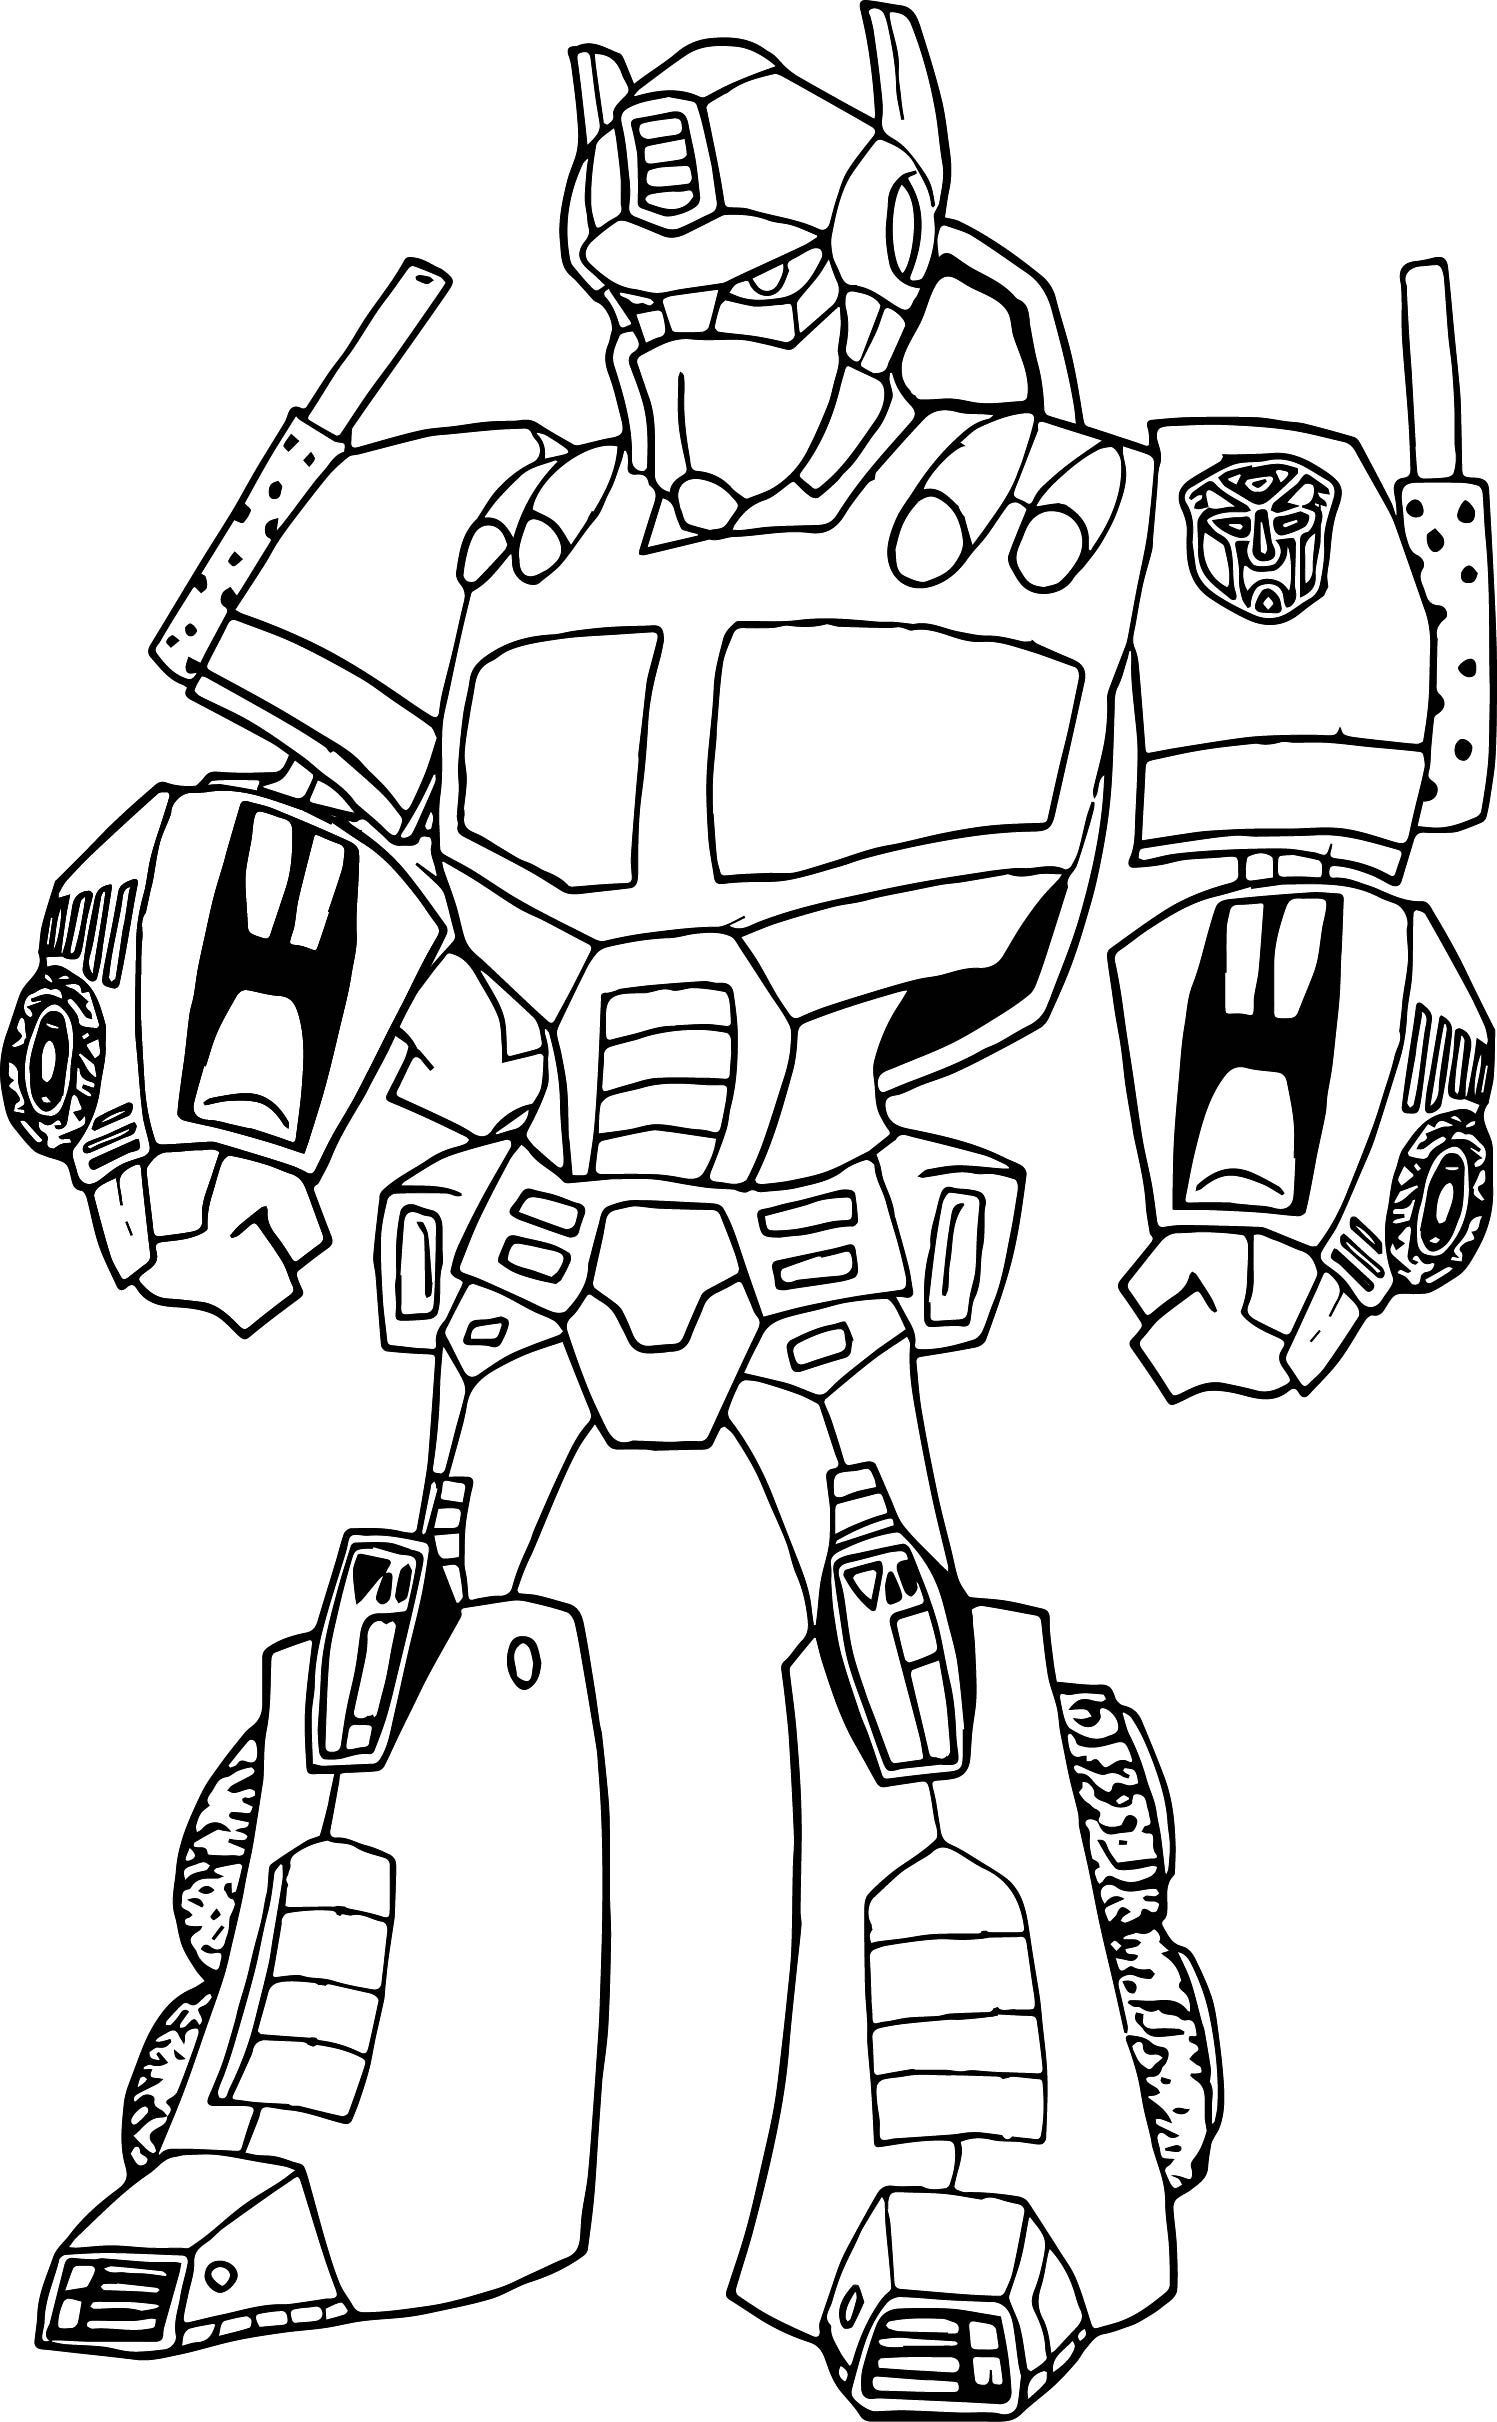 Worksheet Bumble Bee Transformers